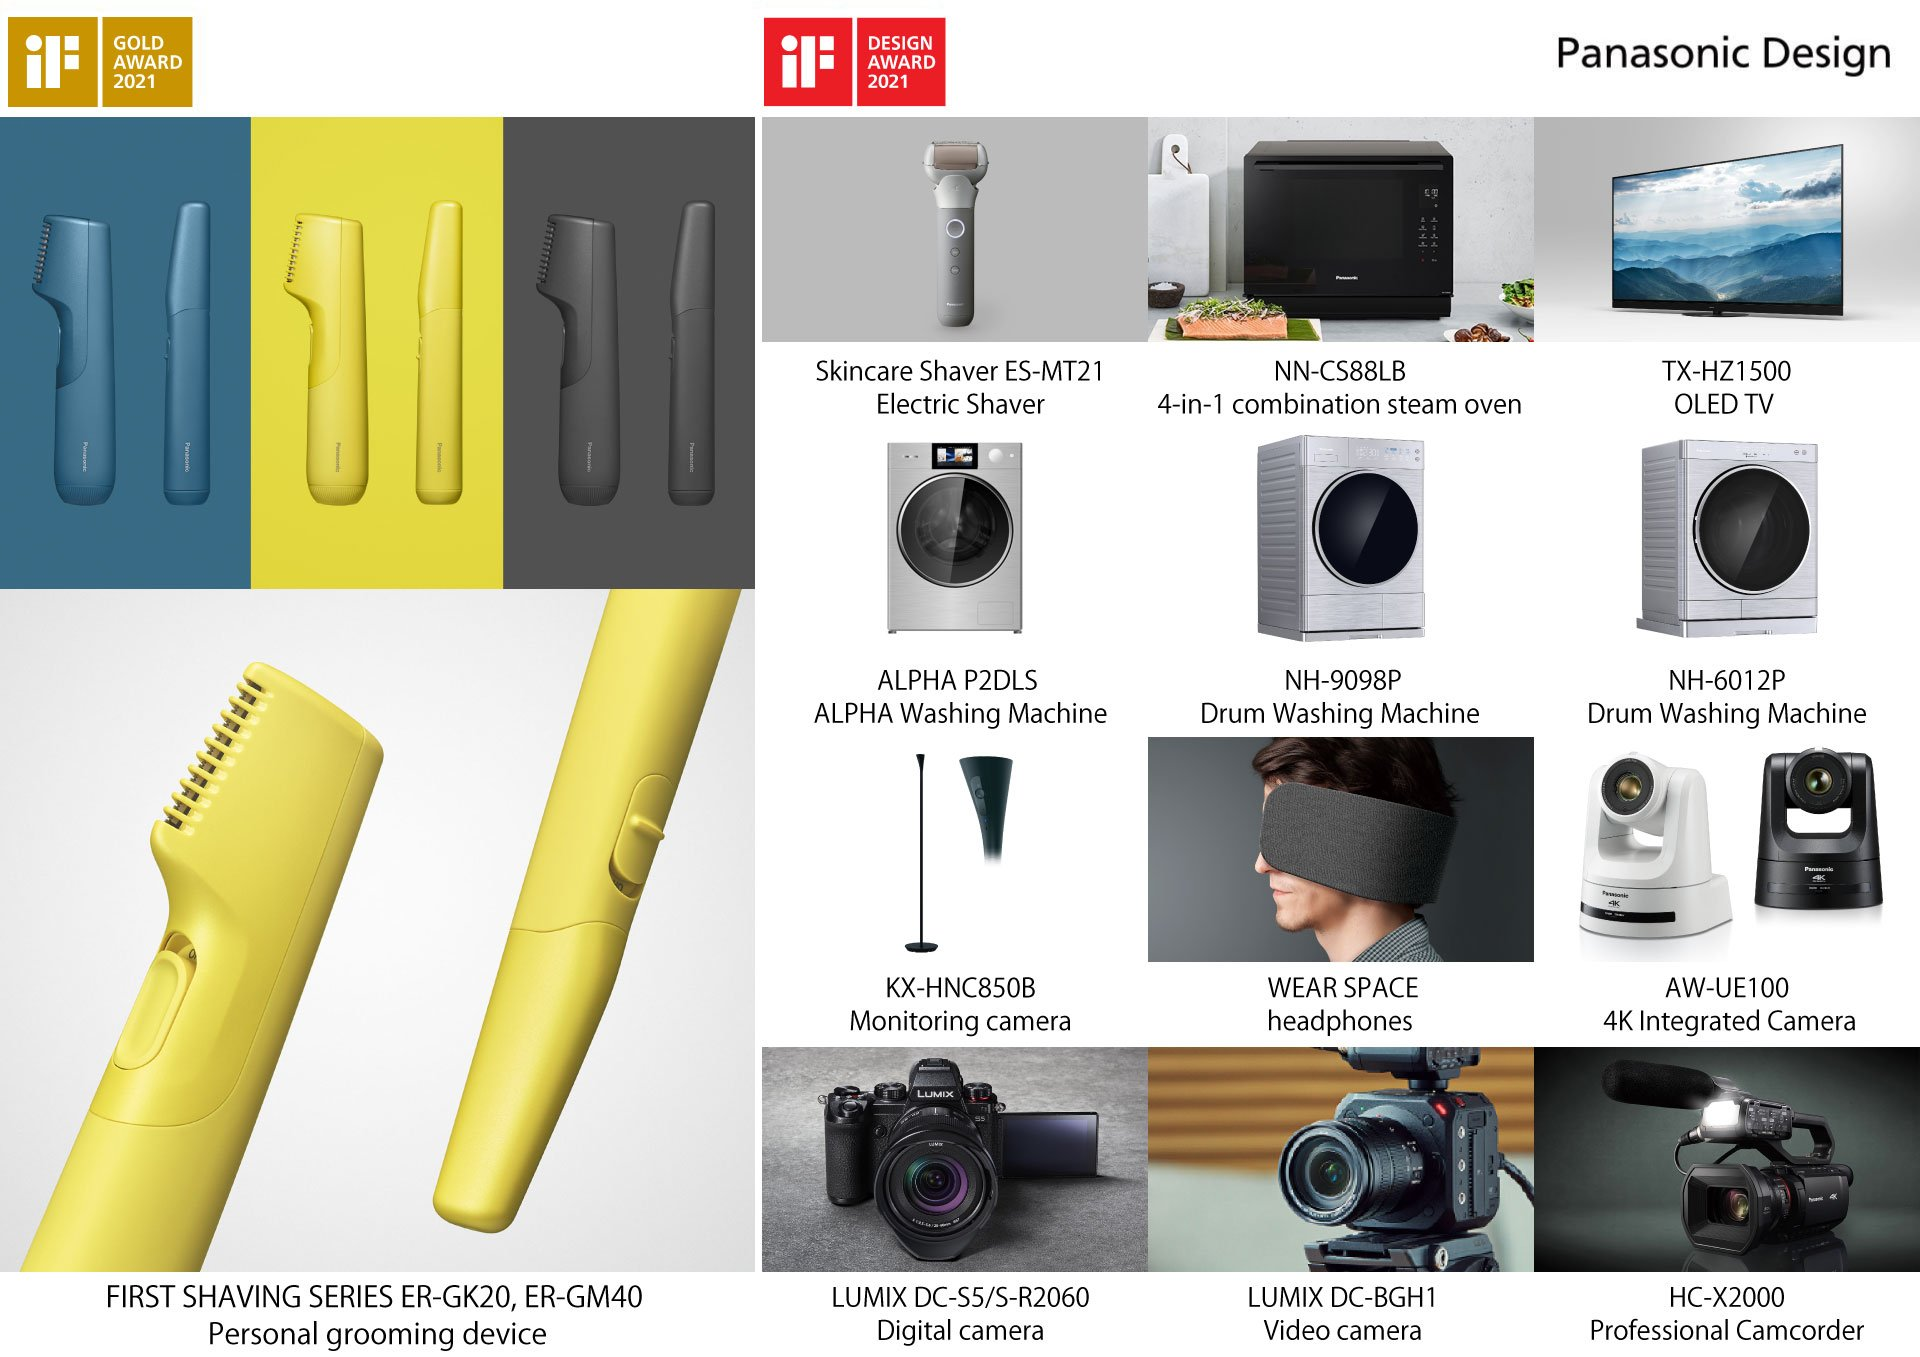 Products that received the iF DESIGN AWARD 2021.